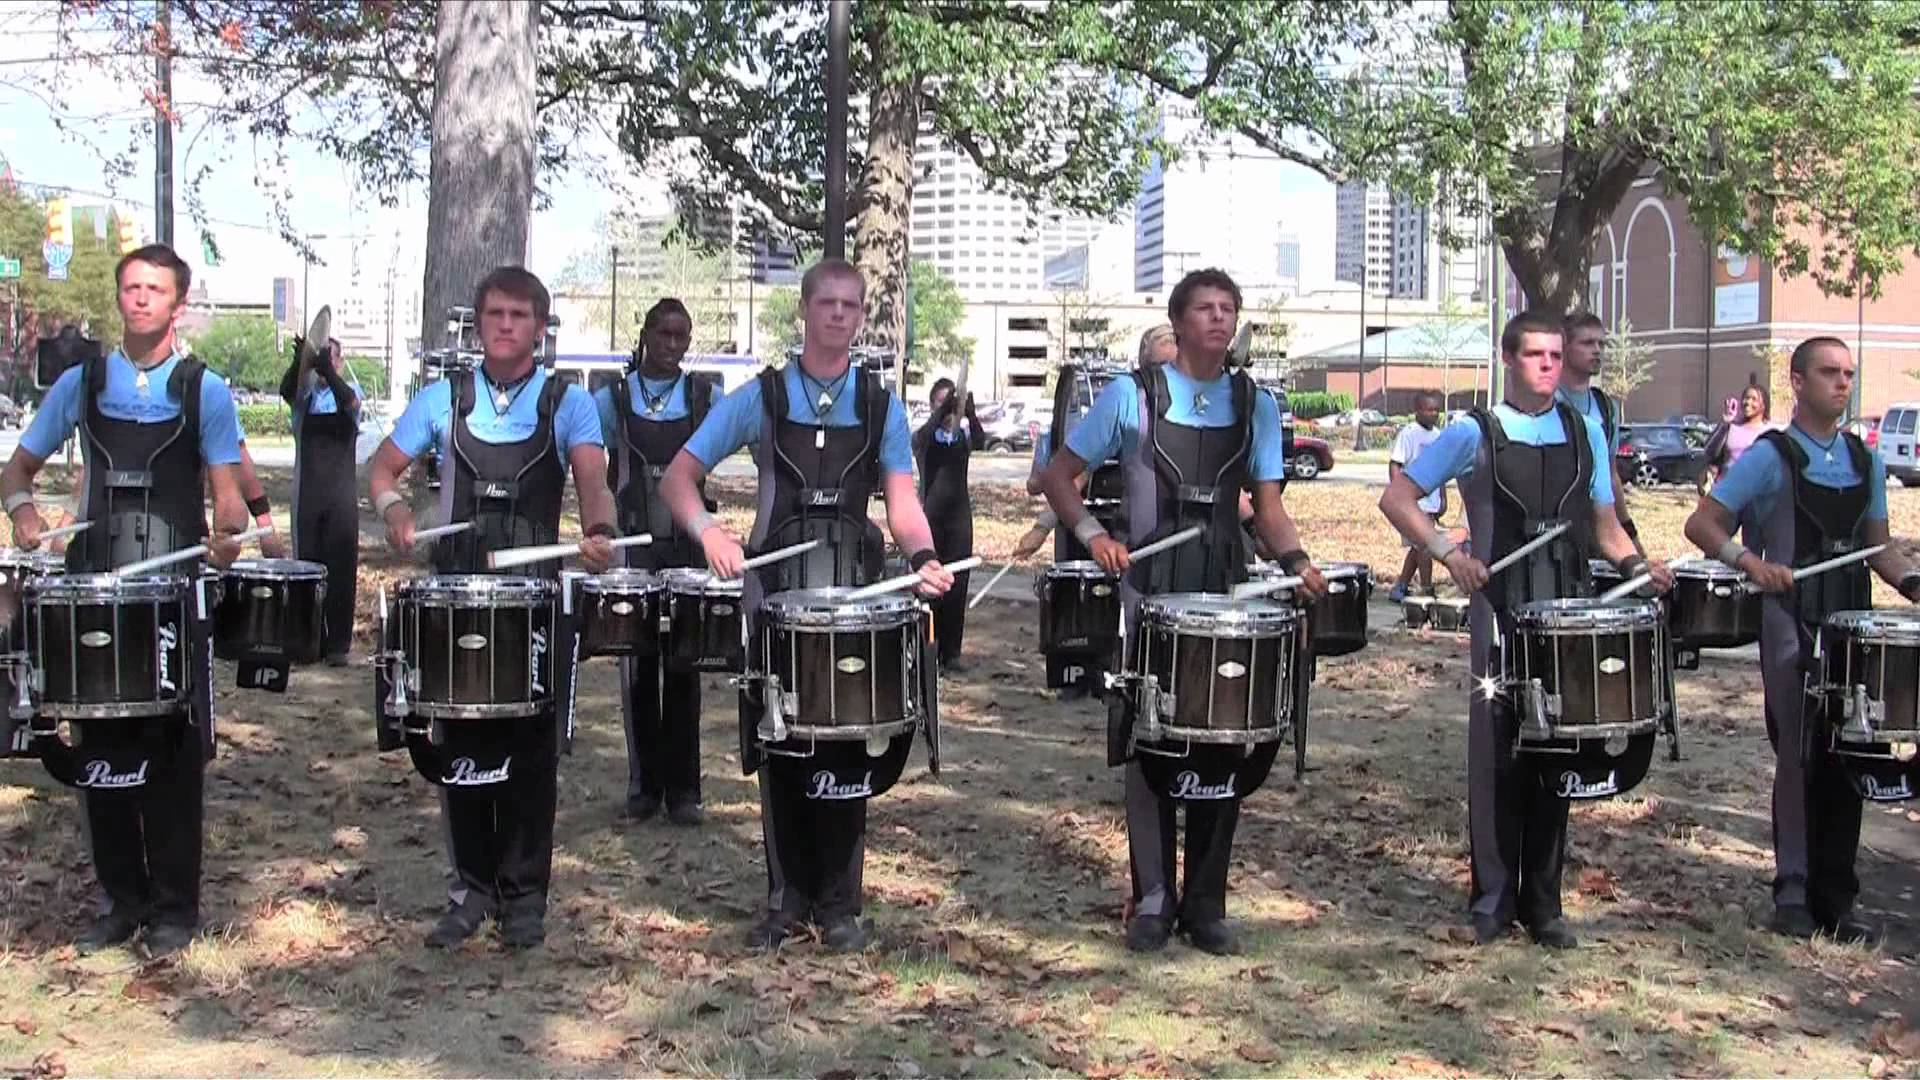 Spirit of Atlanta Drumline 2012 – Closer